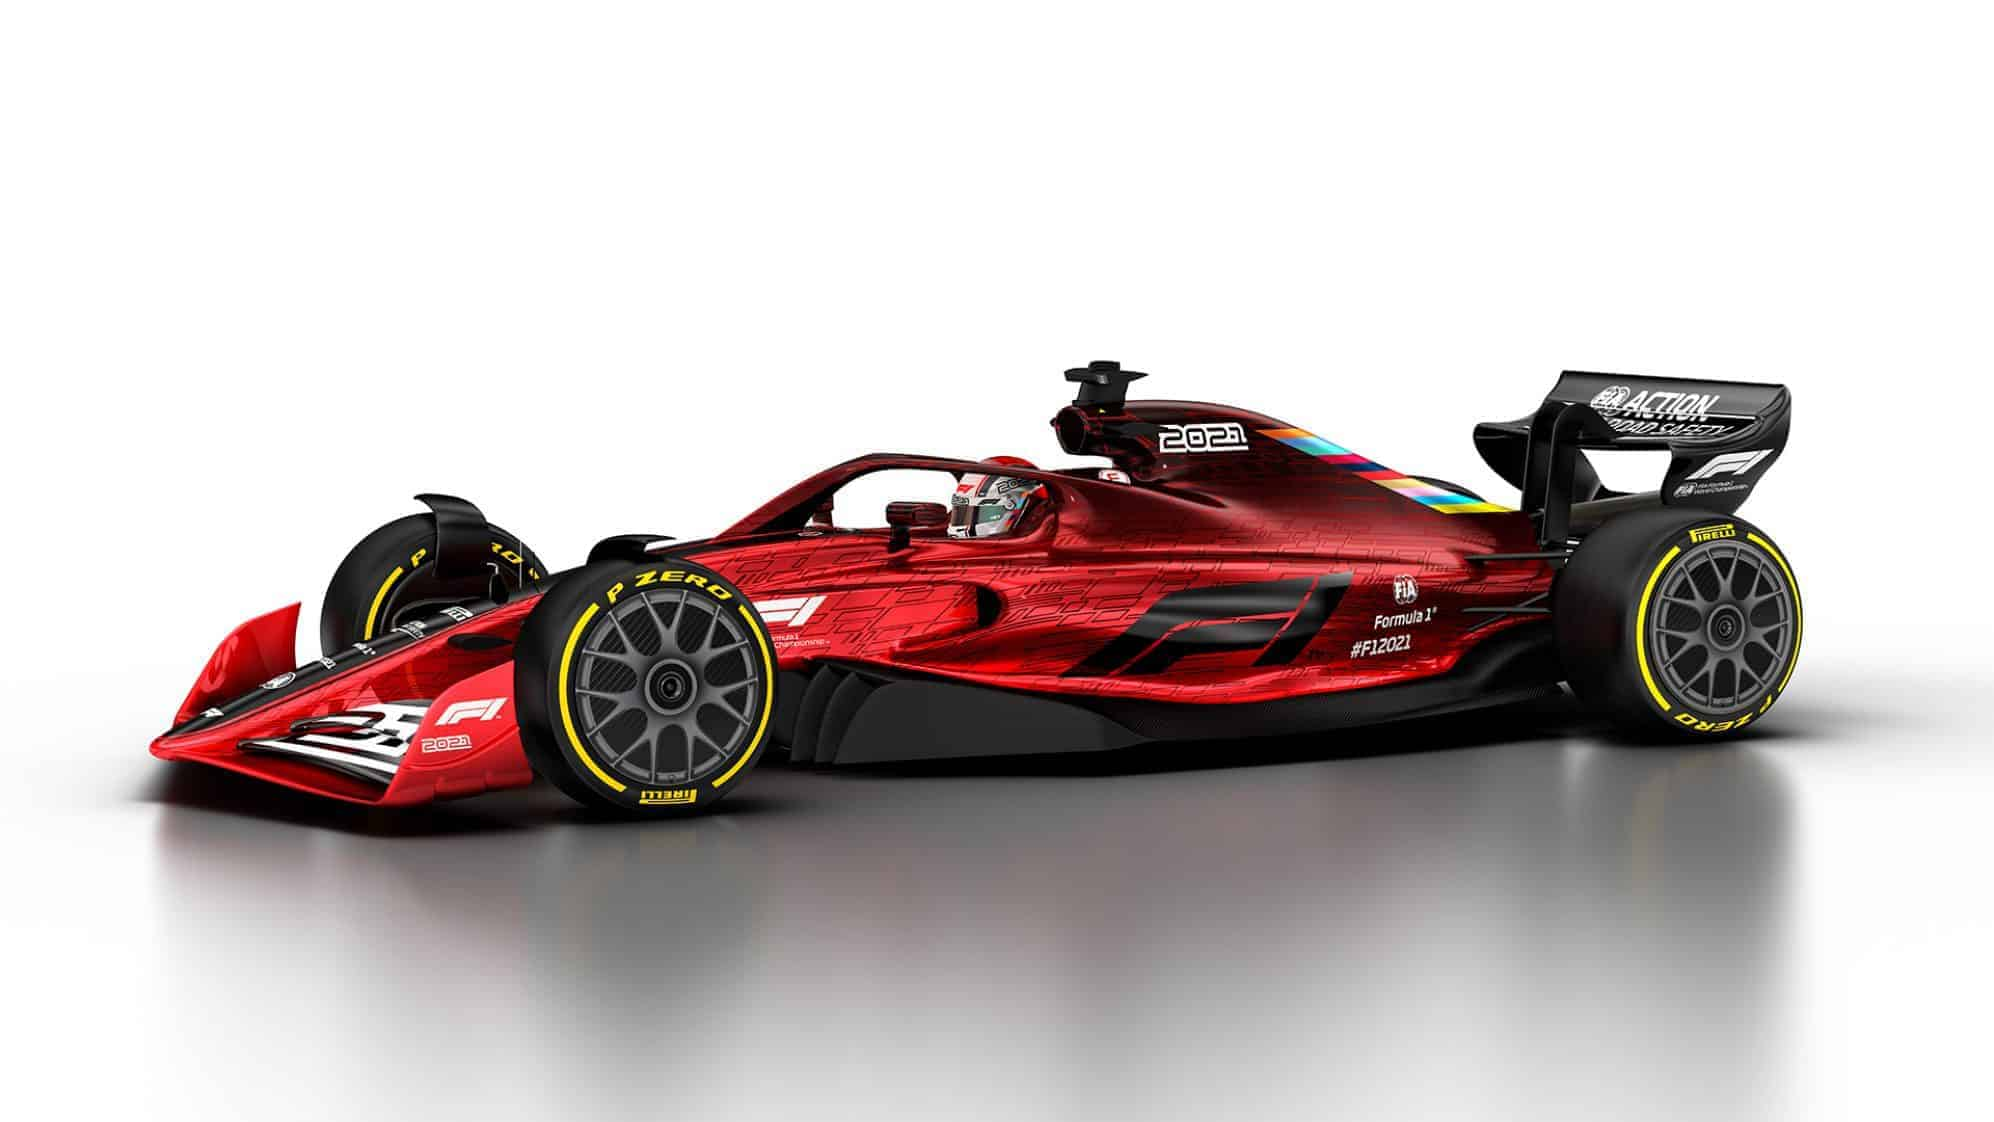 2021 F1 Car released on Oct 31 2019 left side view Photo Formula 1